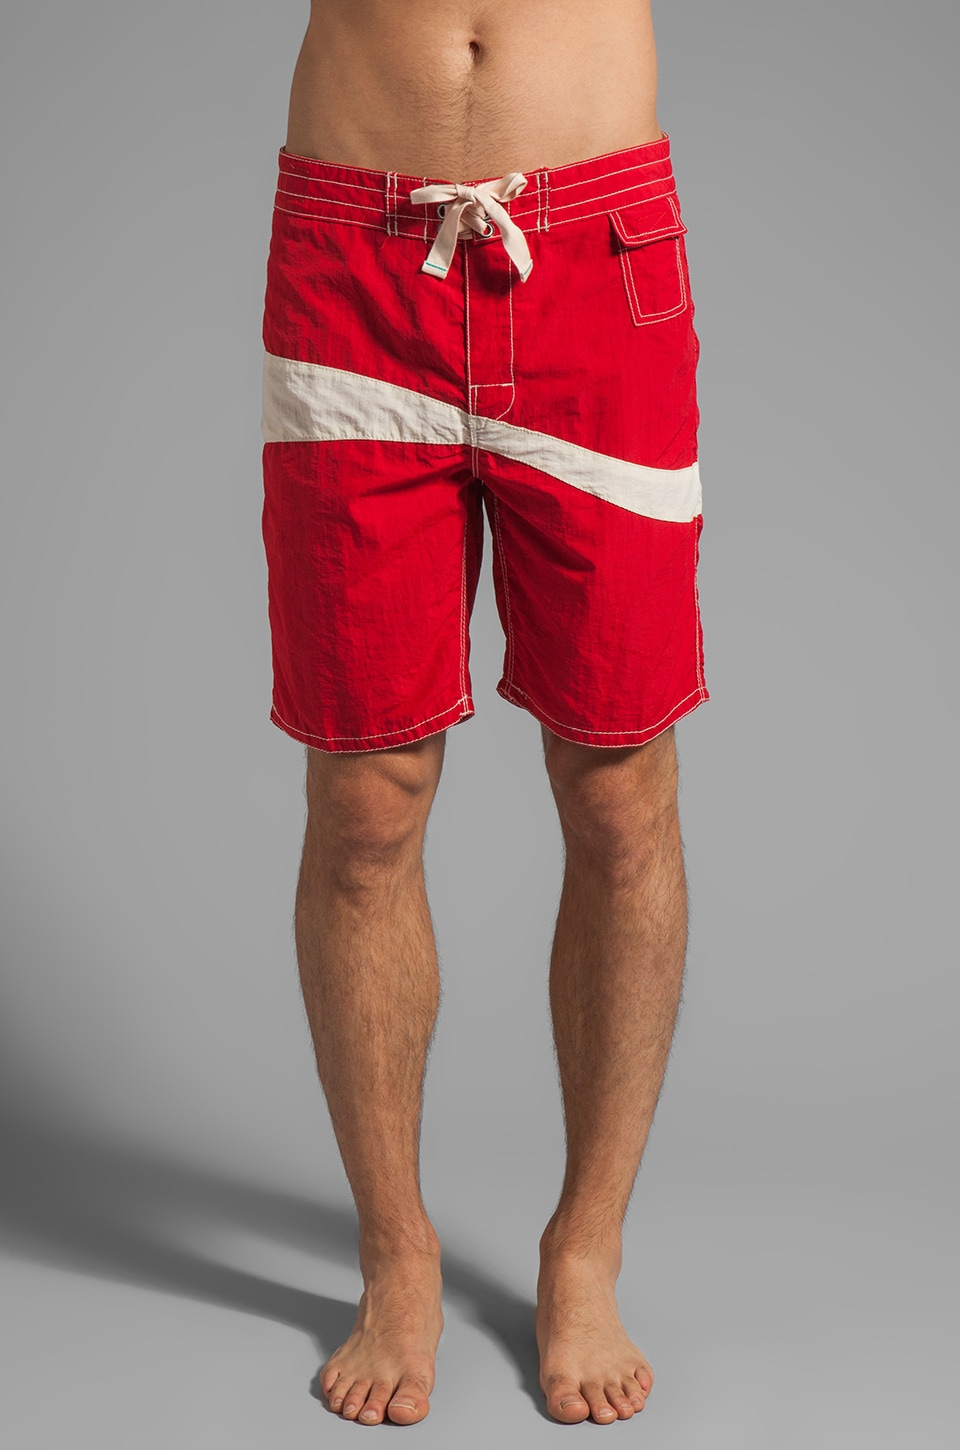 Howe Liquid Sunshind Board Shorts in Red